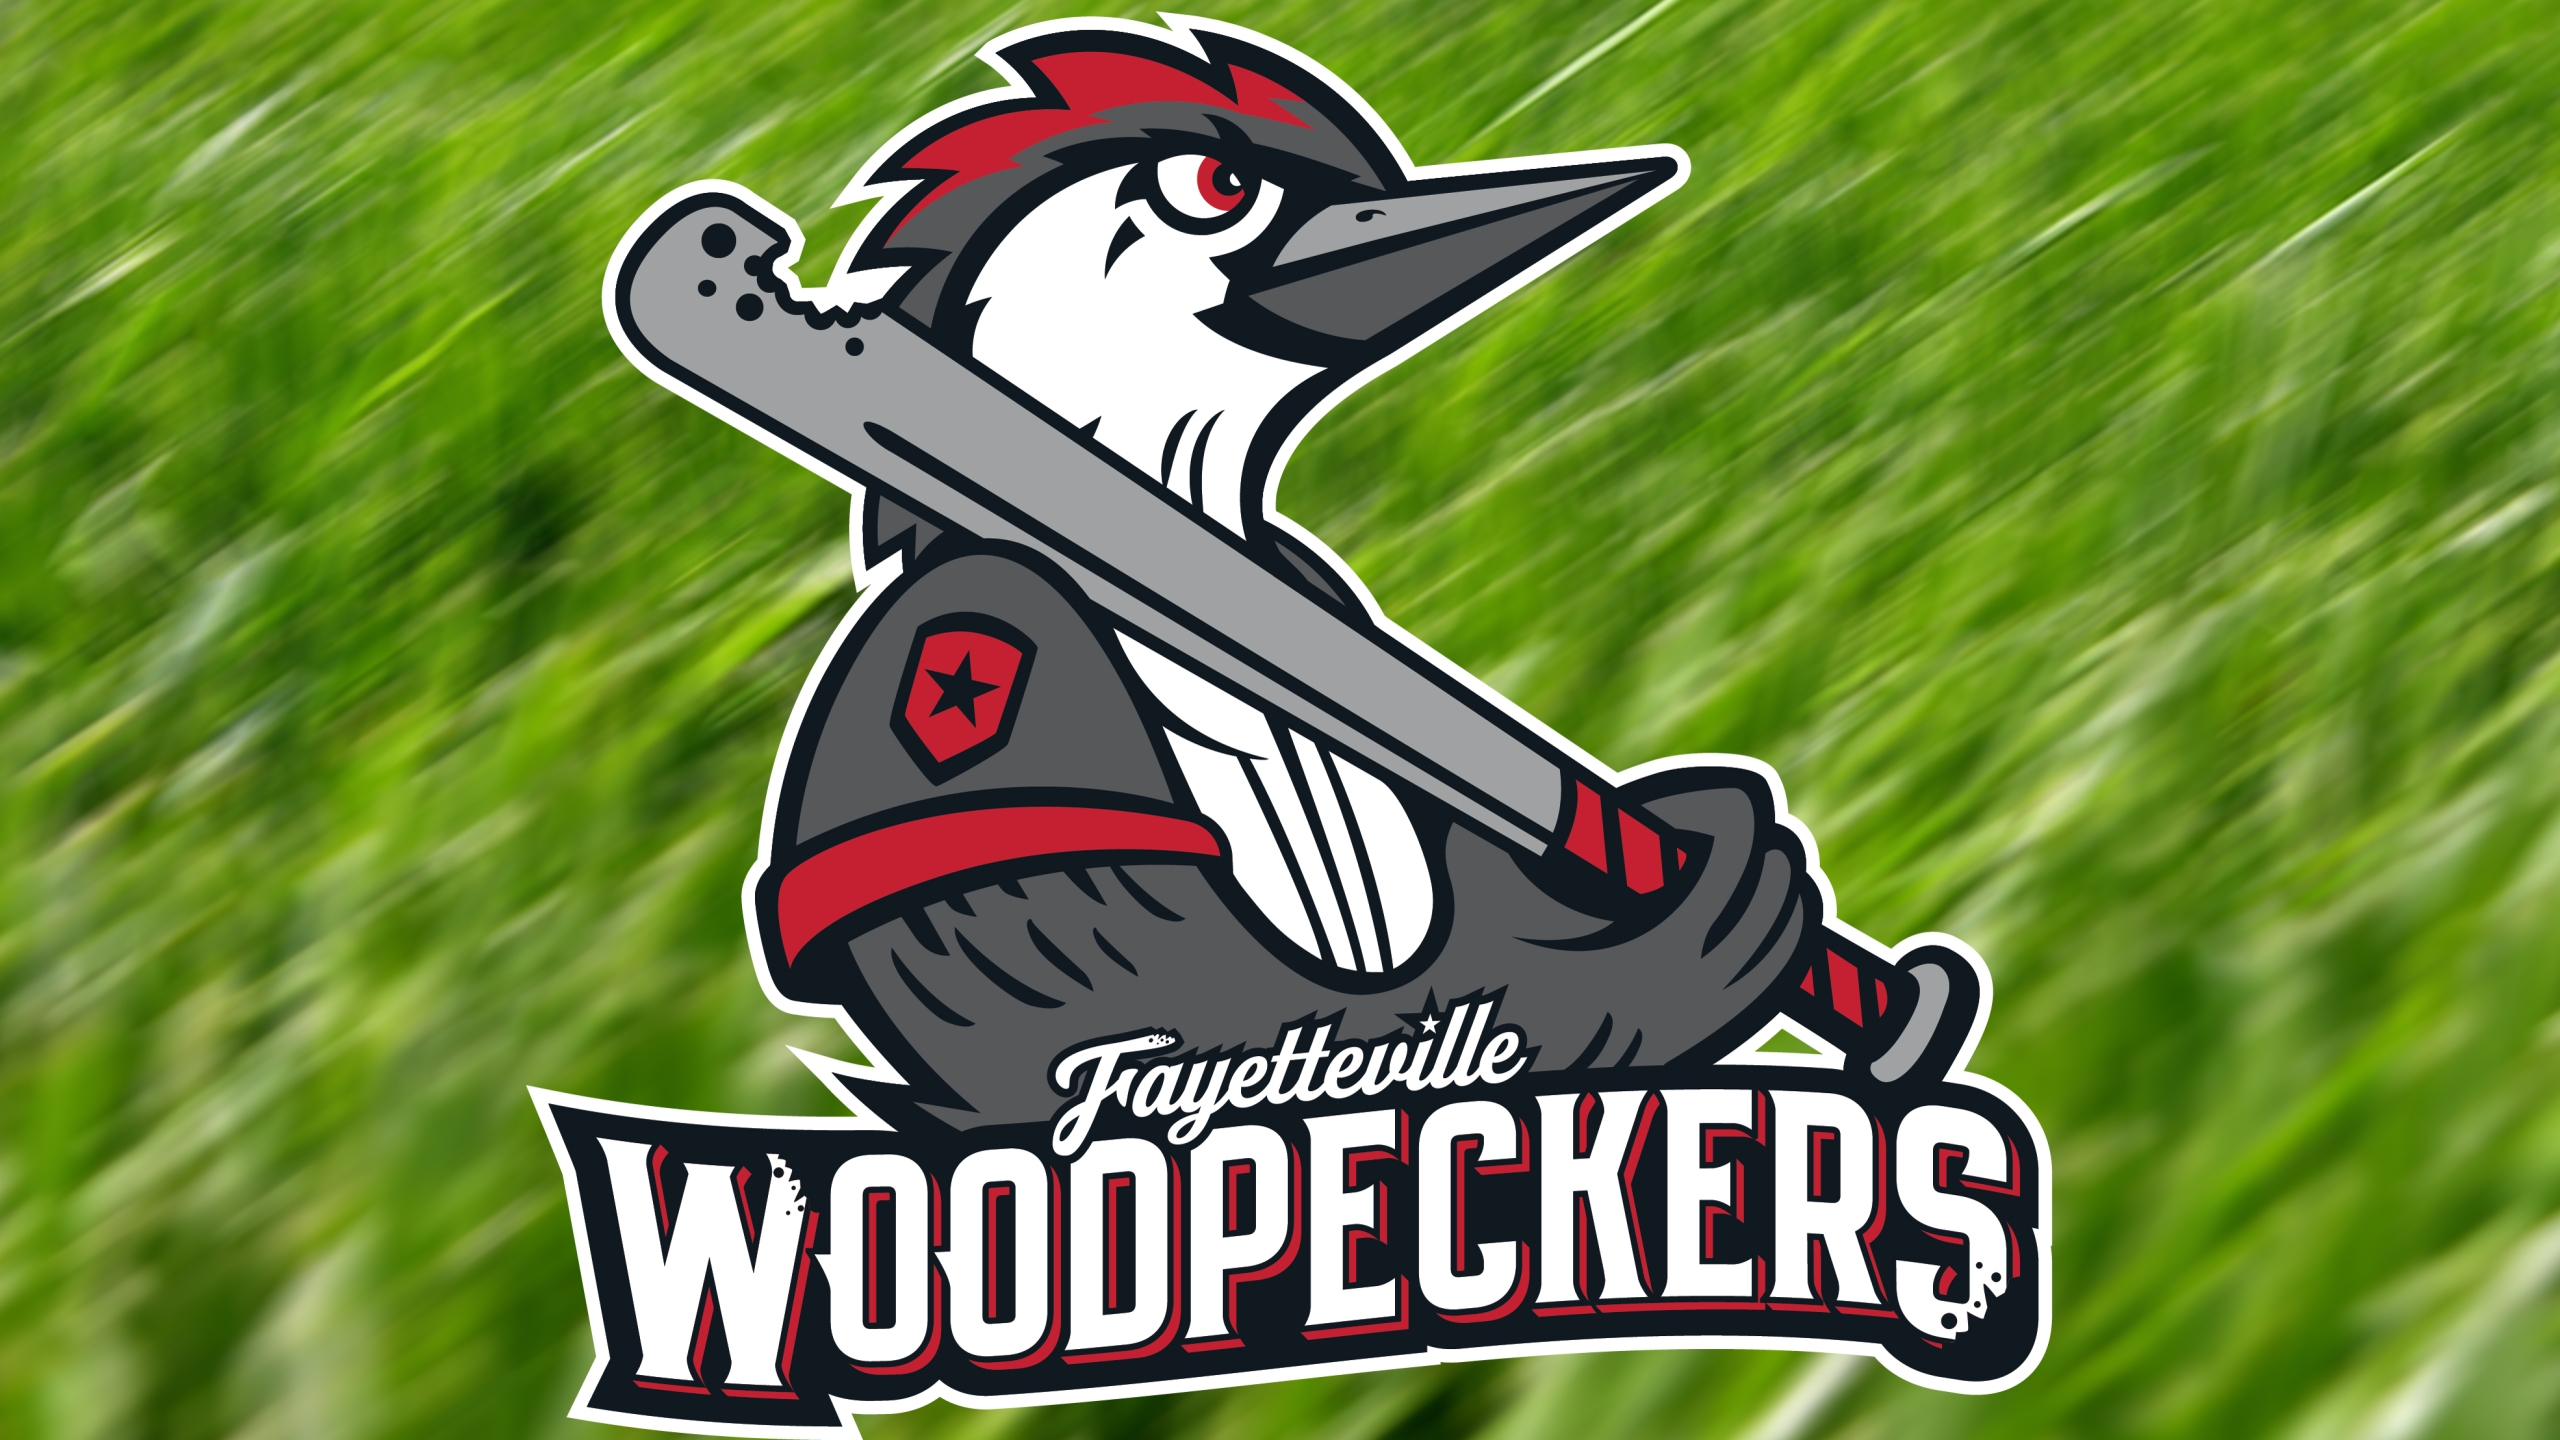 Fayetteville Woodpeckers to play in SEGRA Stadium